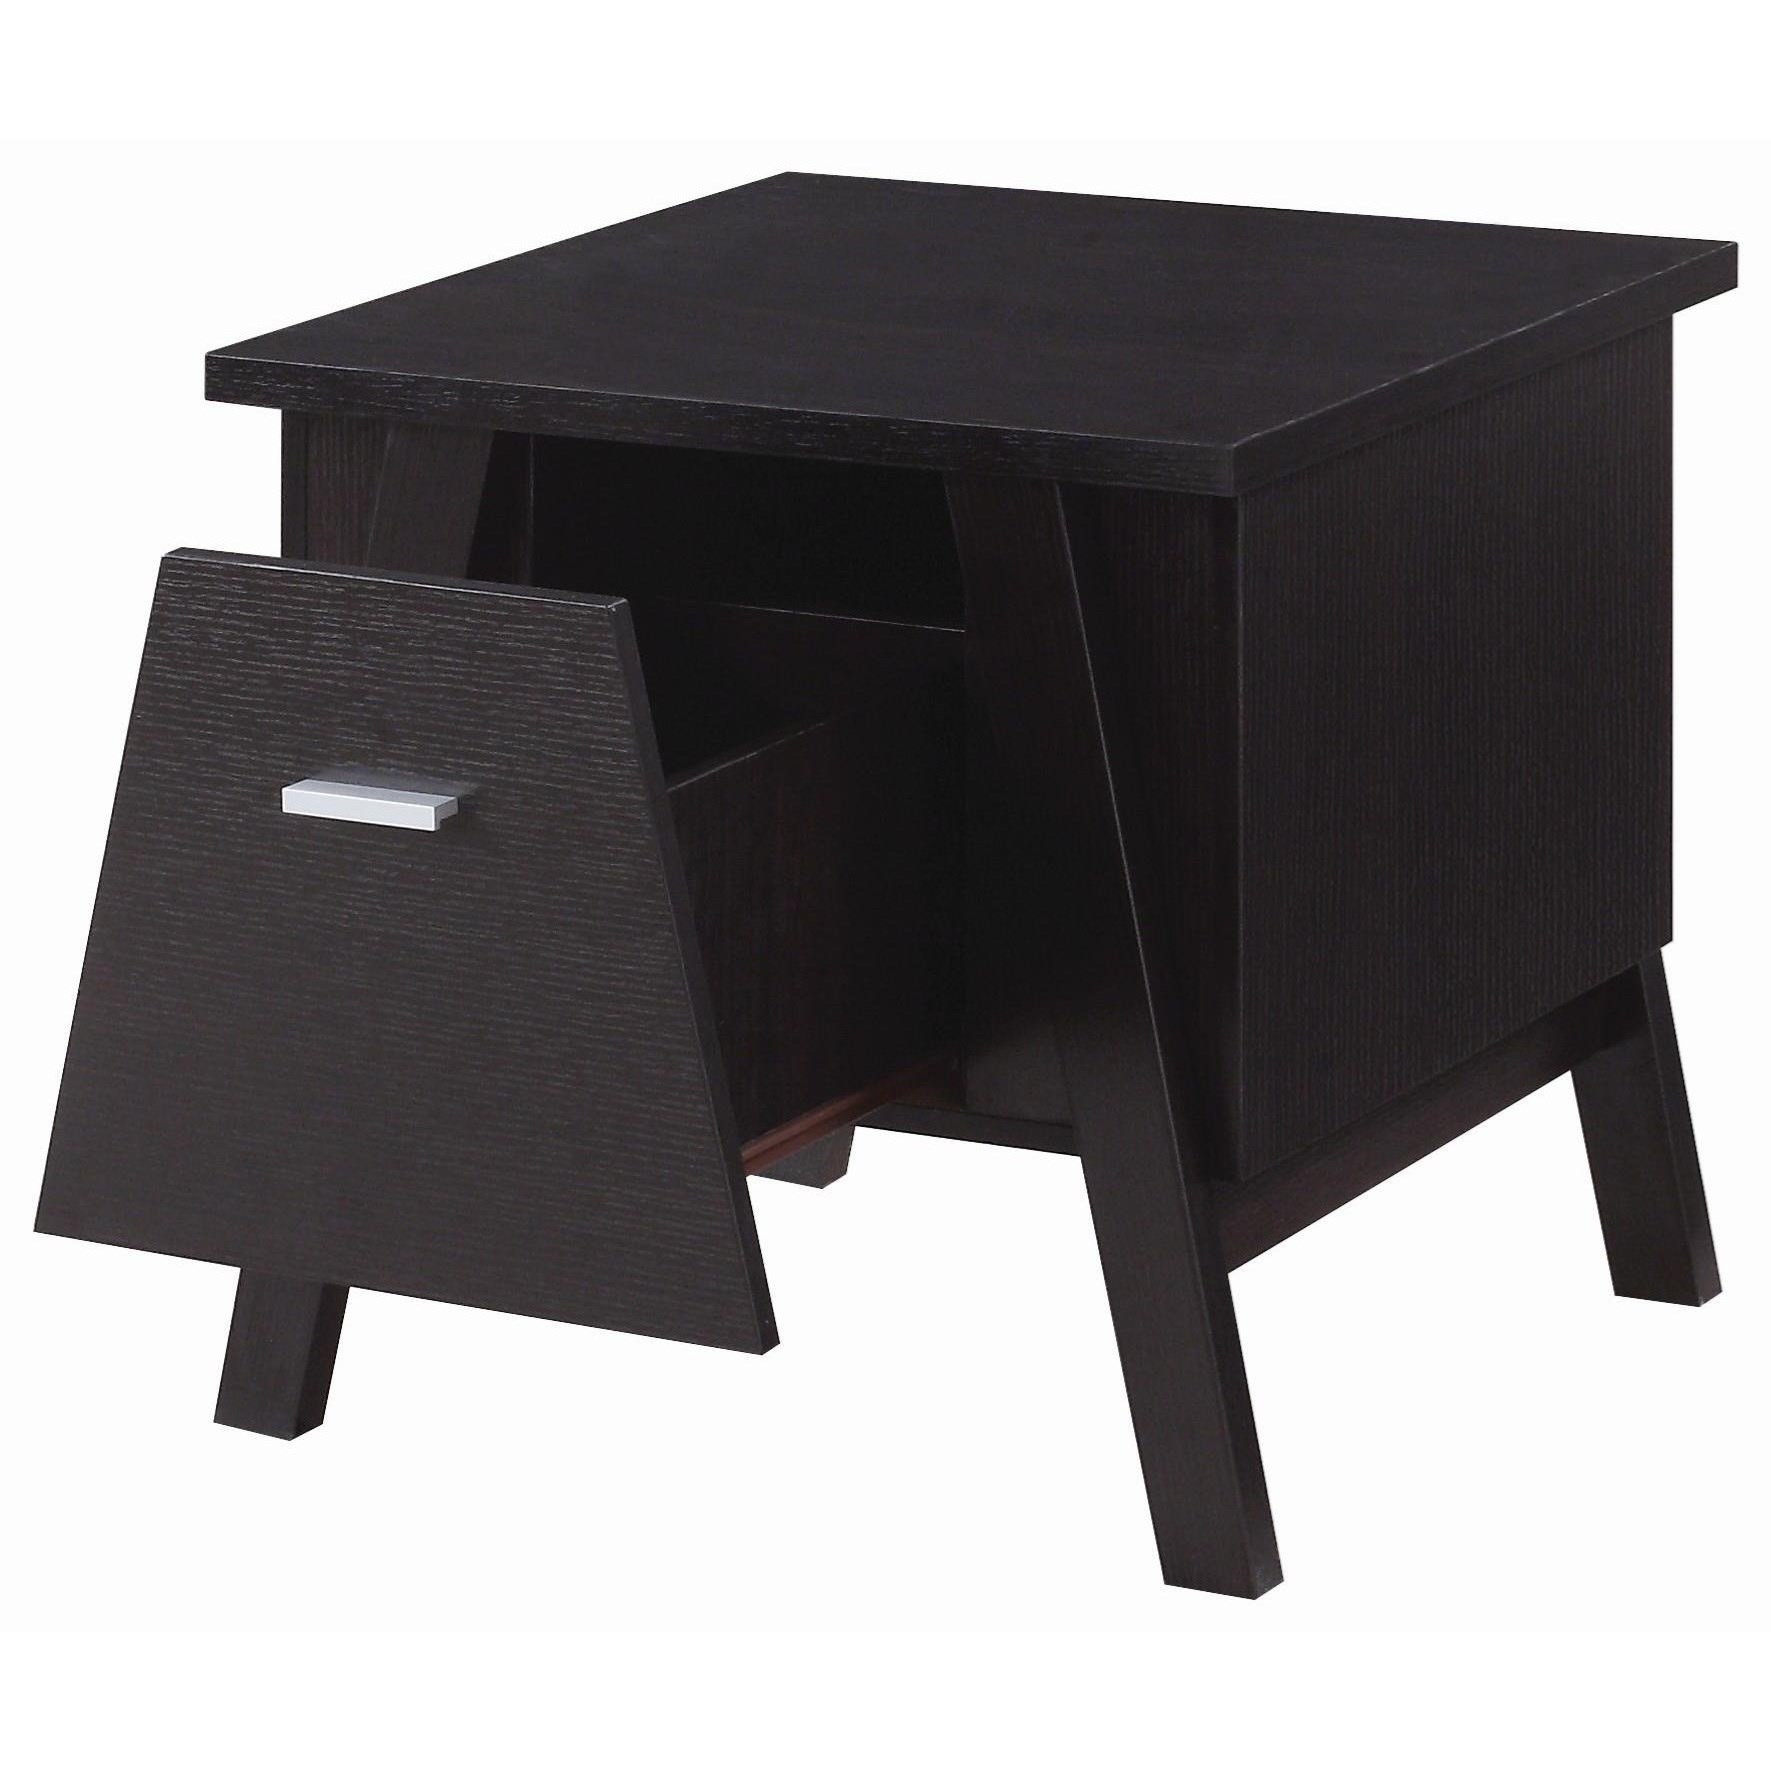 Coaster 72113 End Table - Item Number: 721137